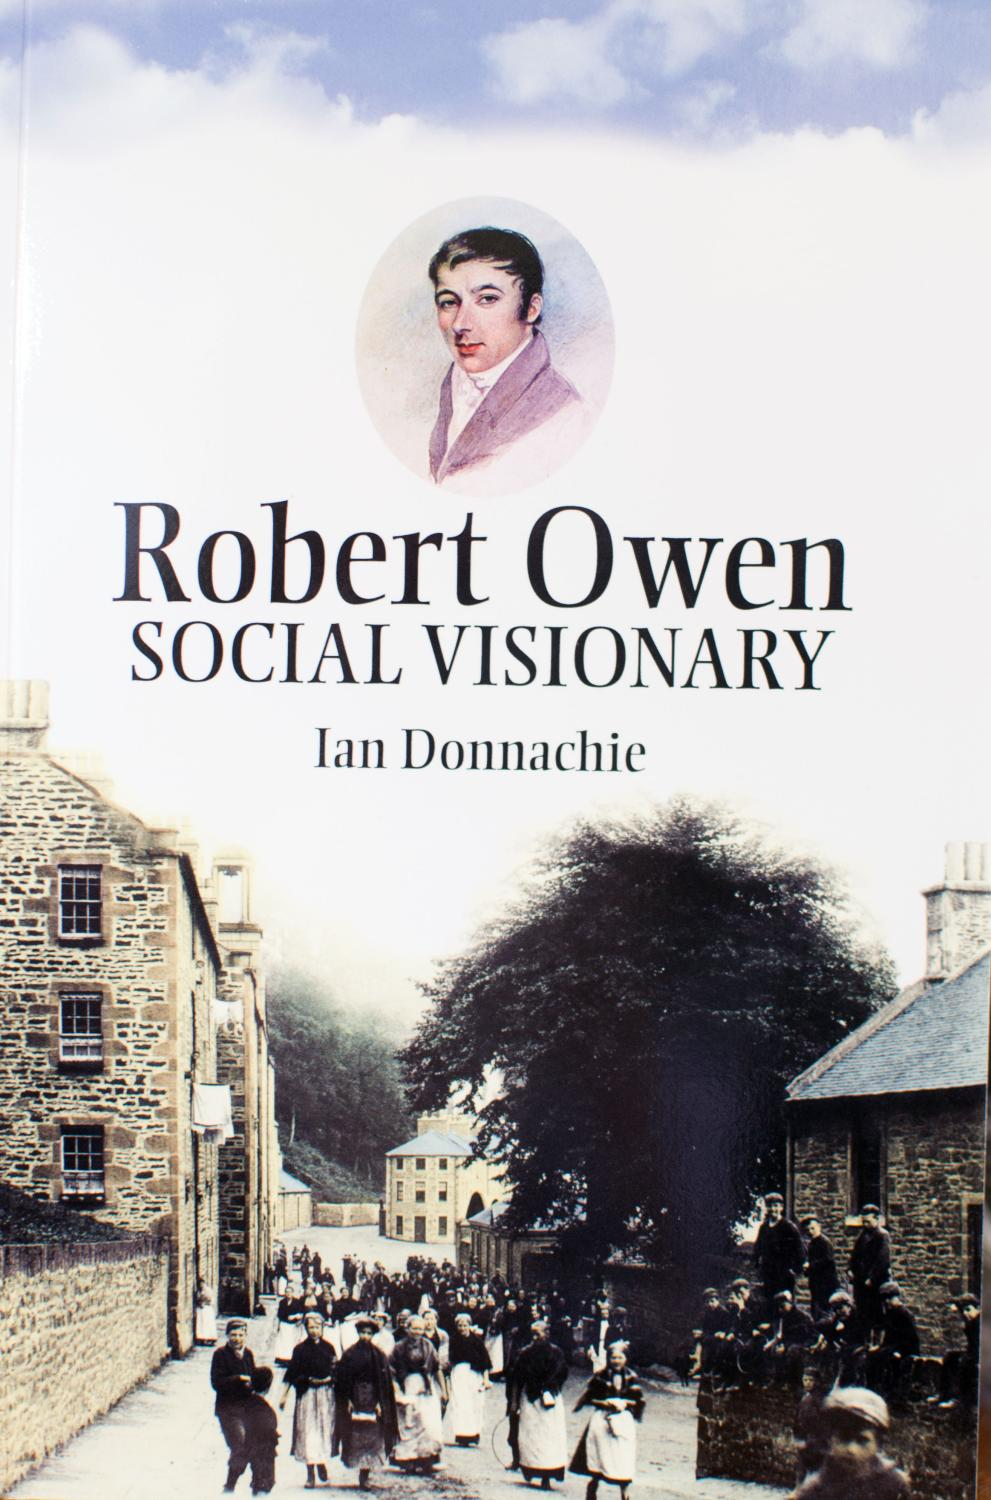 Book - Robert Owen Social Visionary